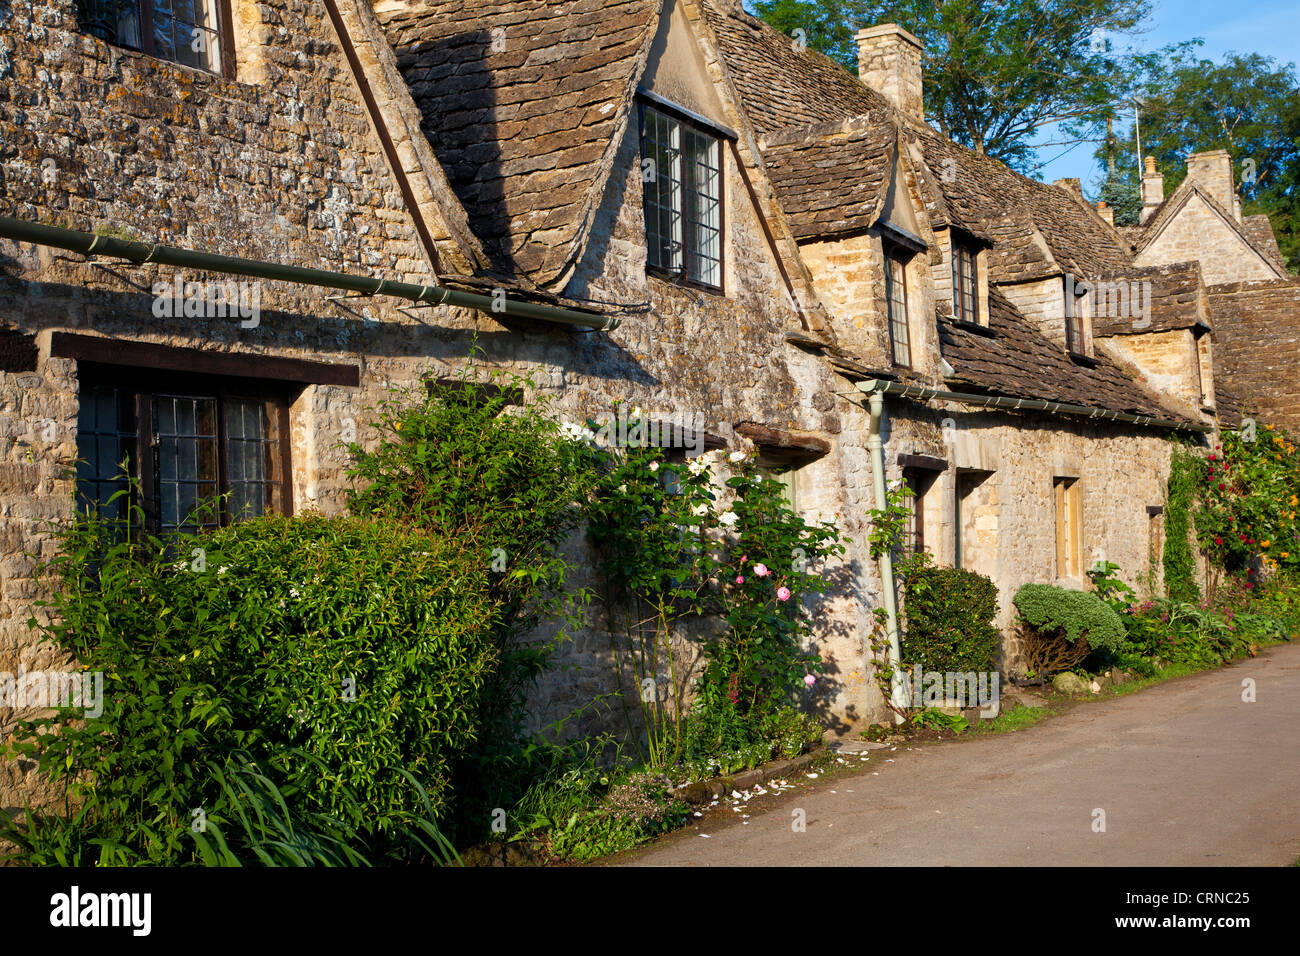 Famous row of weavers cottages,Arlington Row,built in 1380 as a monastic wool store. Bibury Cotswolds Gloucestershire - Stock Image